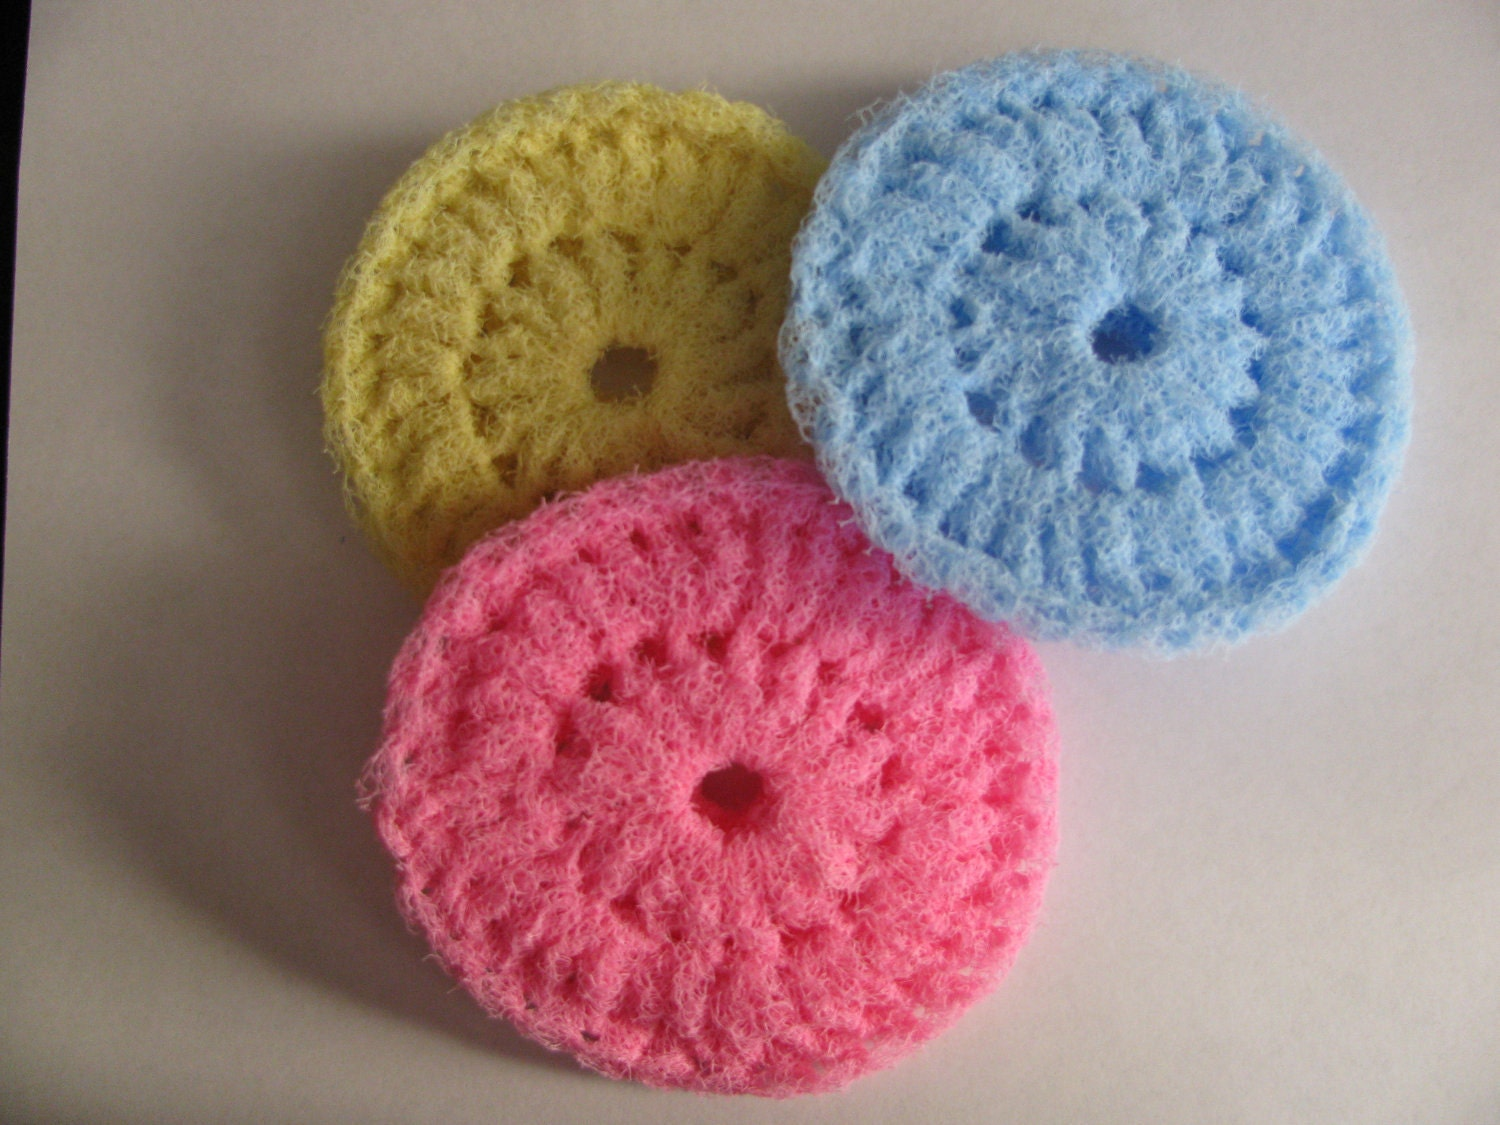 Crocheting Scrubbies With Netting : Crochet Scrubbies Set of 3 by MamawsCraftRoom on Etsy